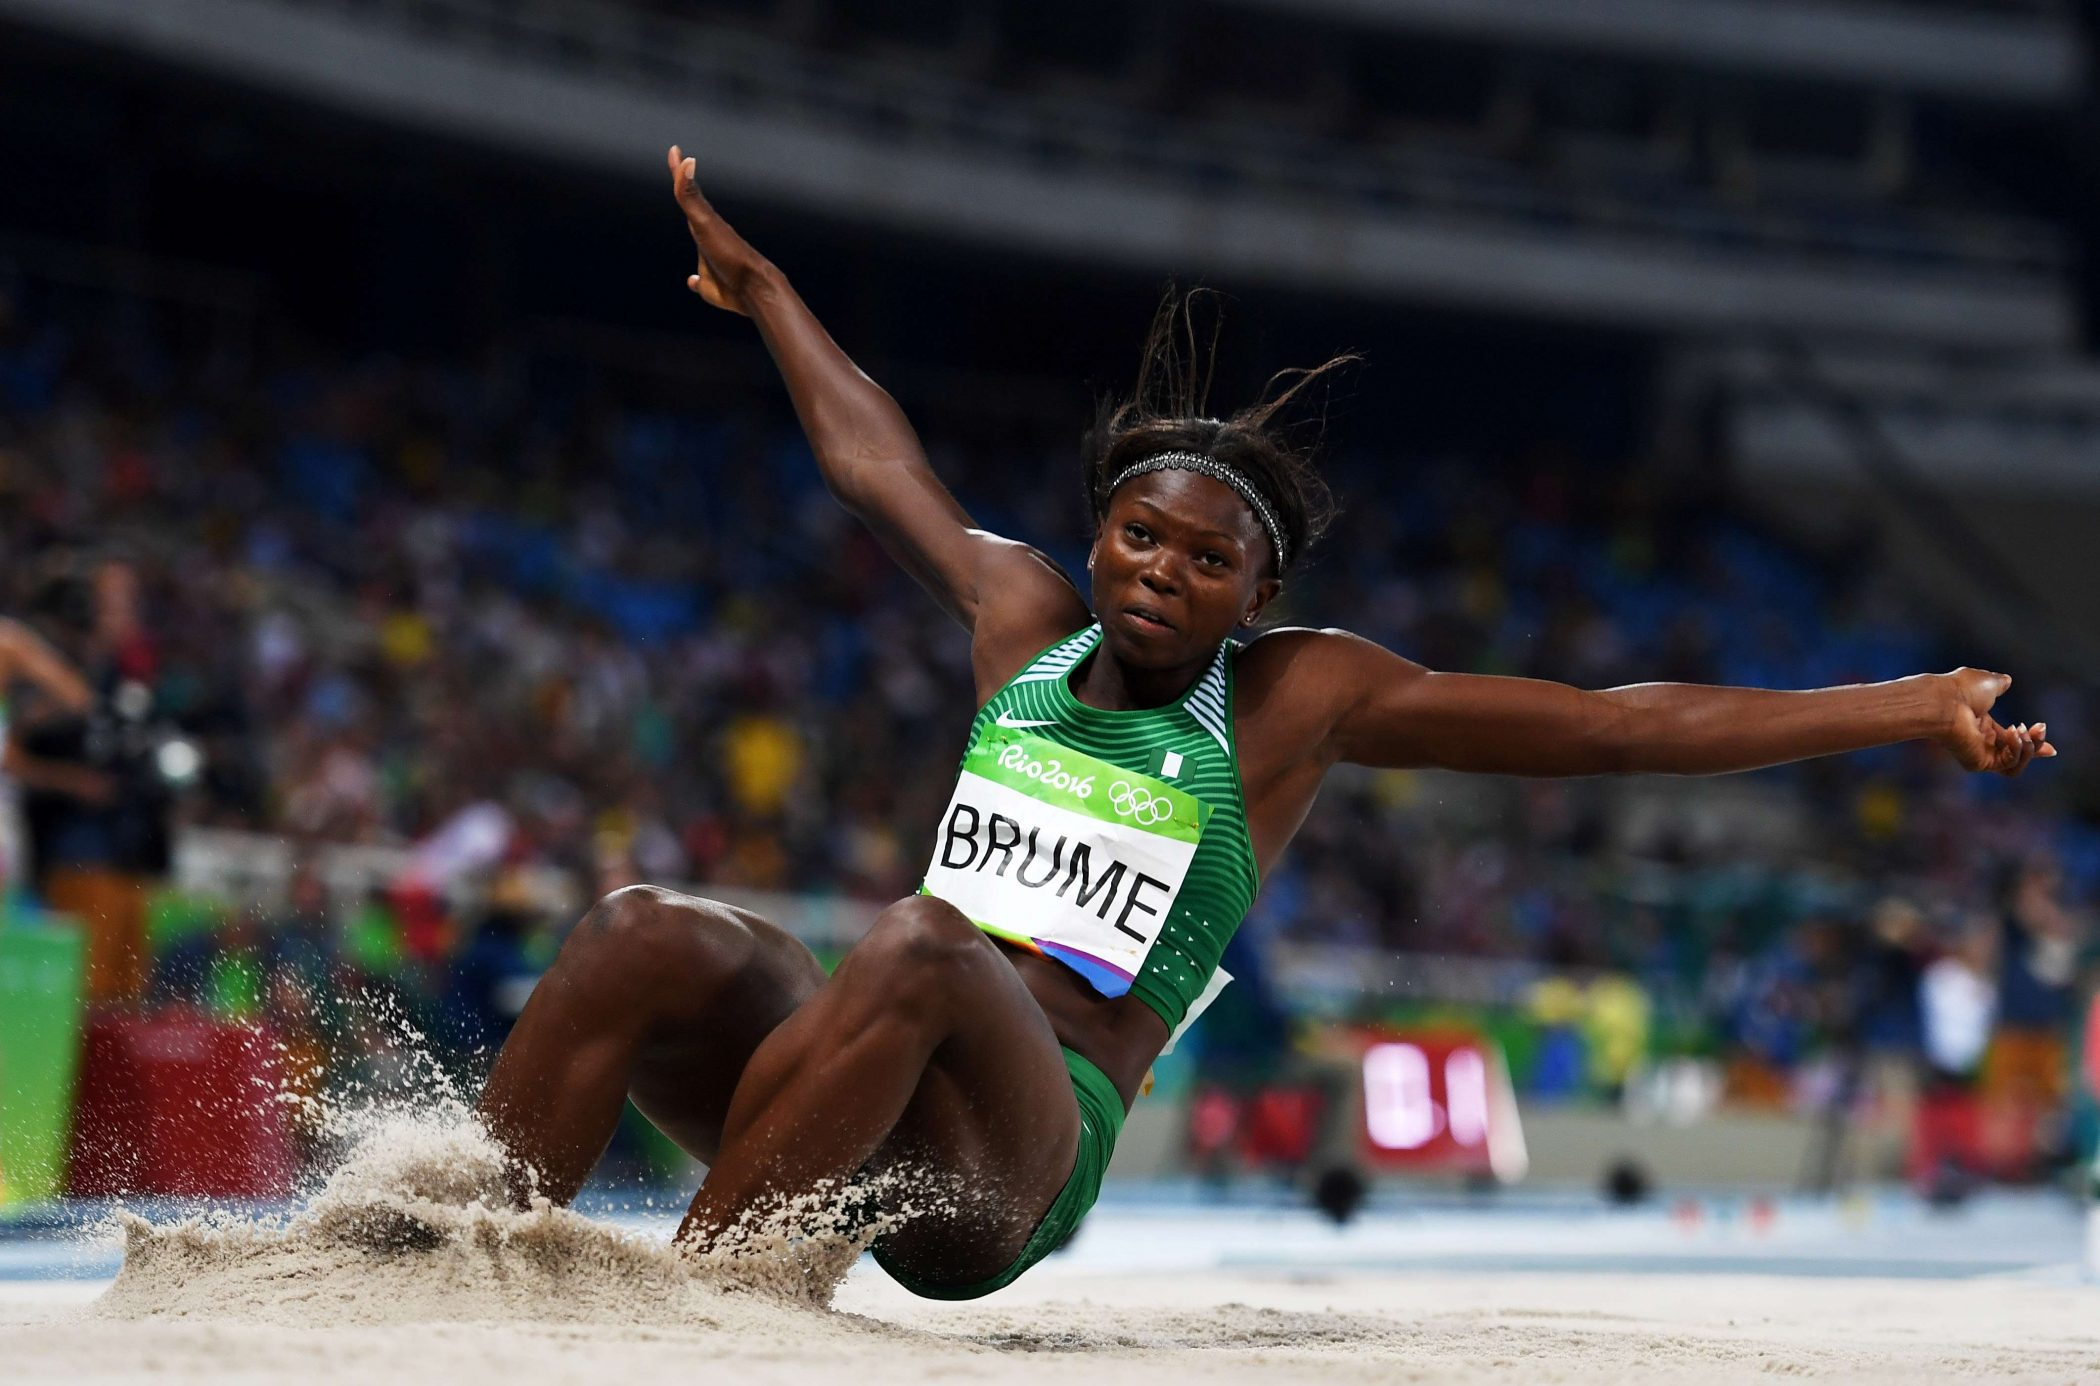 Tokyo Olympics: Ese Brume qualifies for Long Jump final